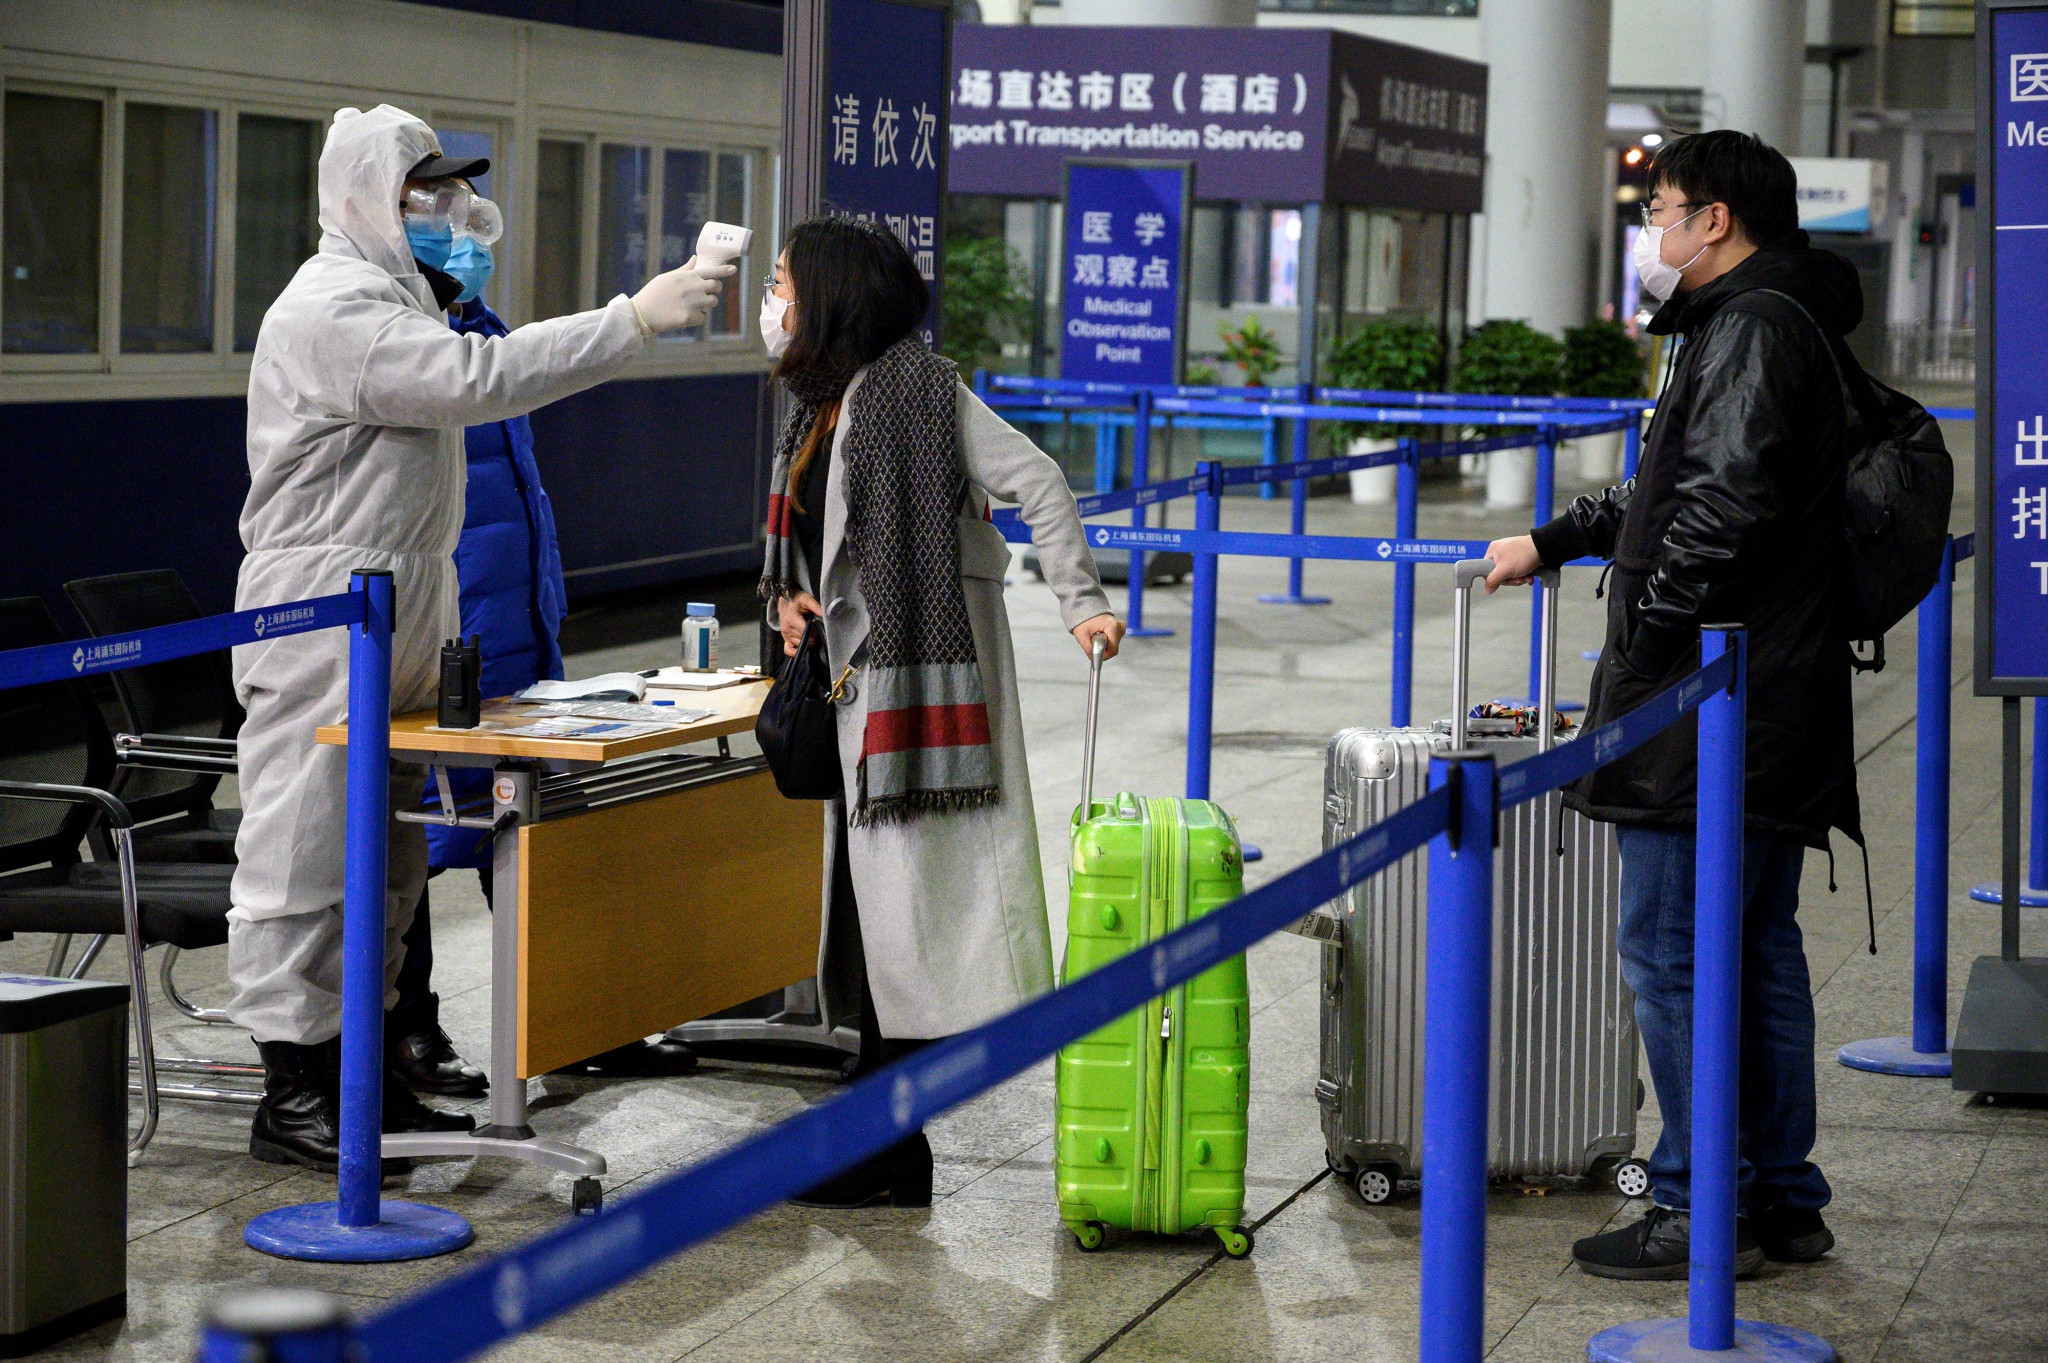 Shanghai Sports General Association suspends sport in the city until further notice due to coronavirus outbreak